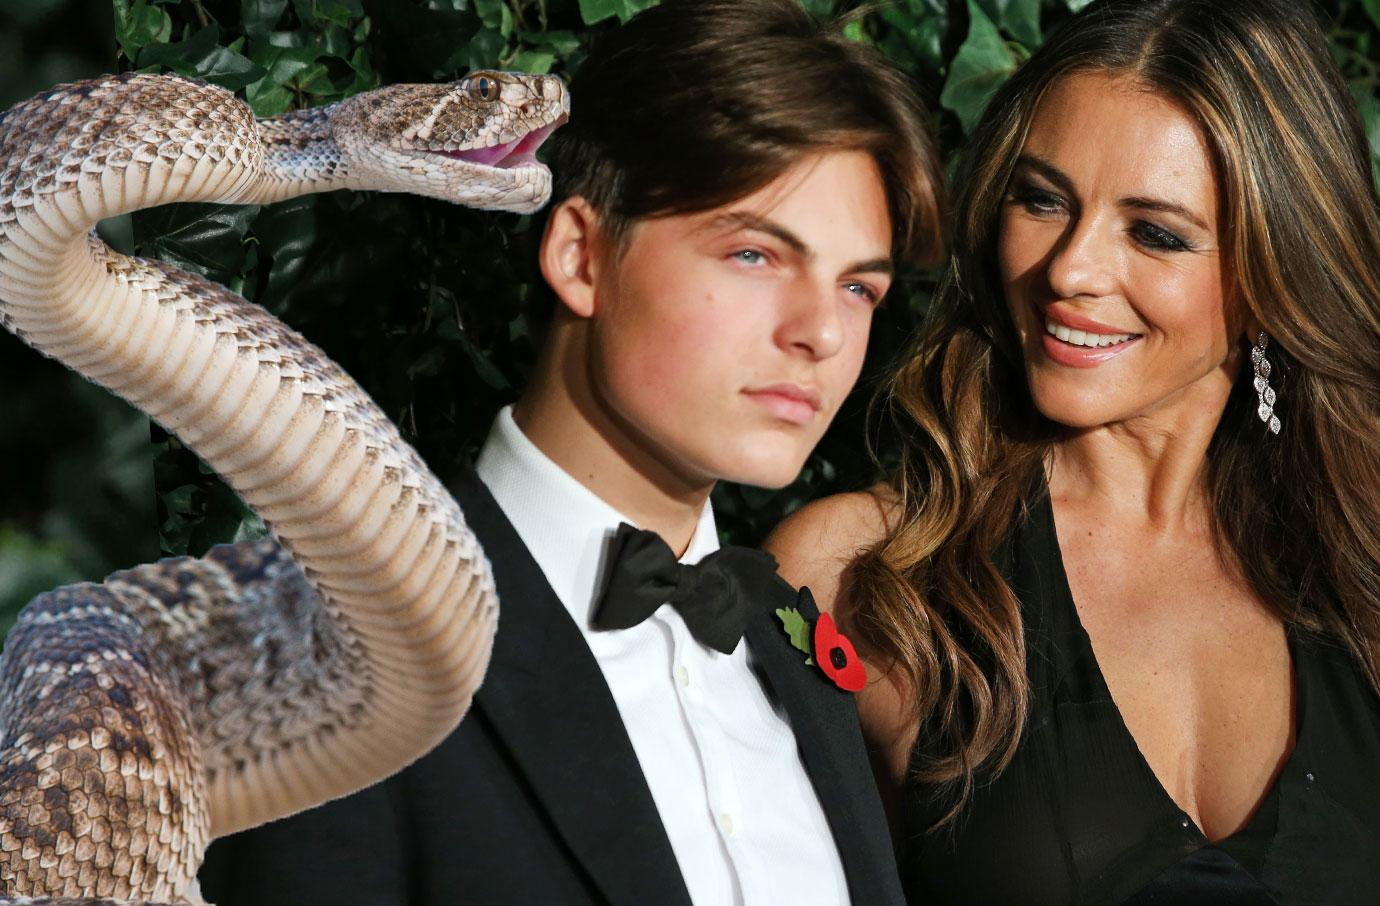 Liz Hurley Saved Son Damian's Life In Horror Snake Attack